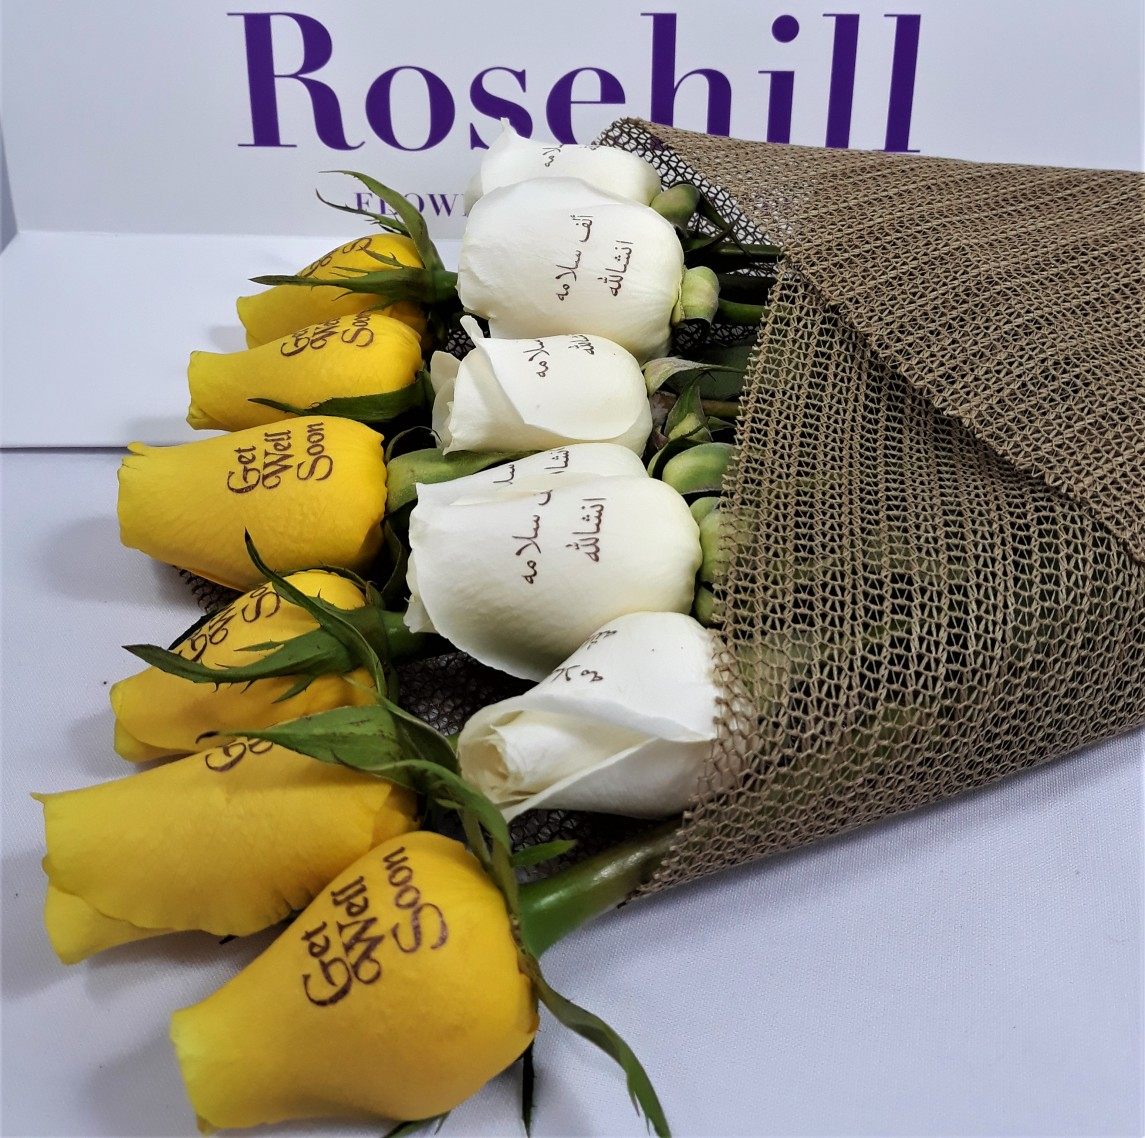 1524657972-h-250-Rosehills Welcome Back Roses Bouquet- White and Yellow.jpg